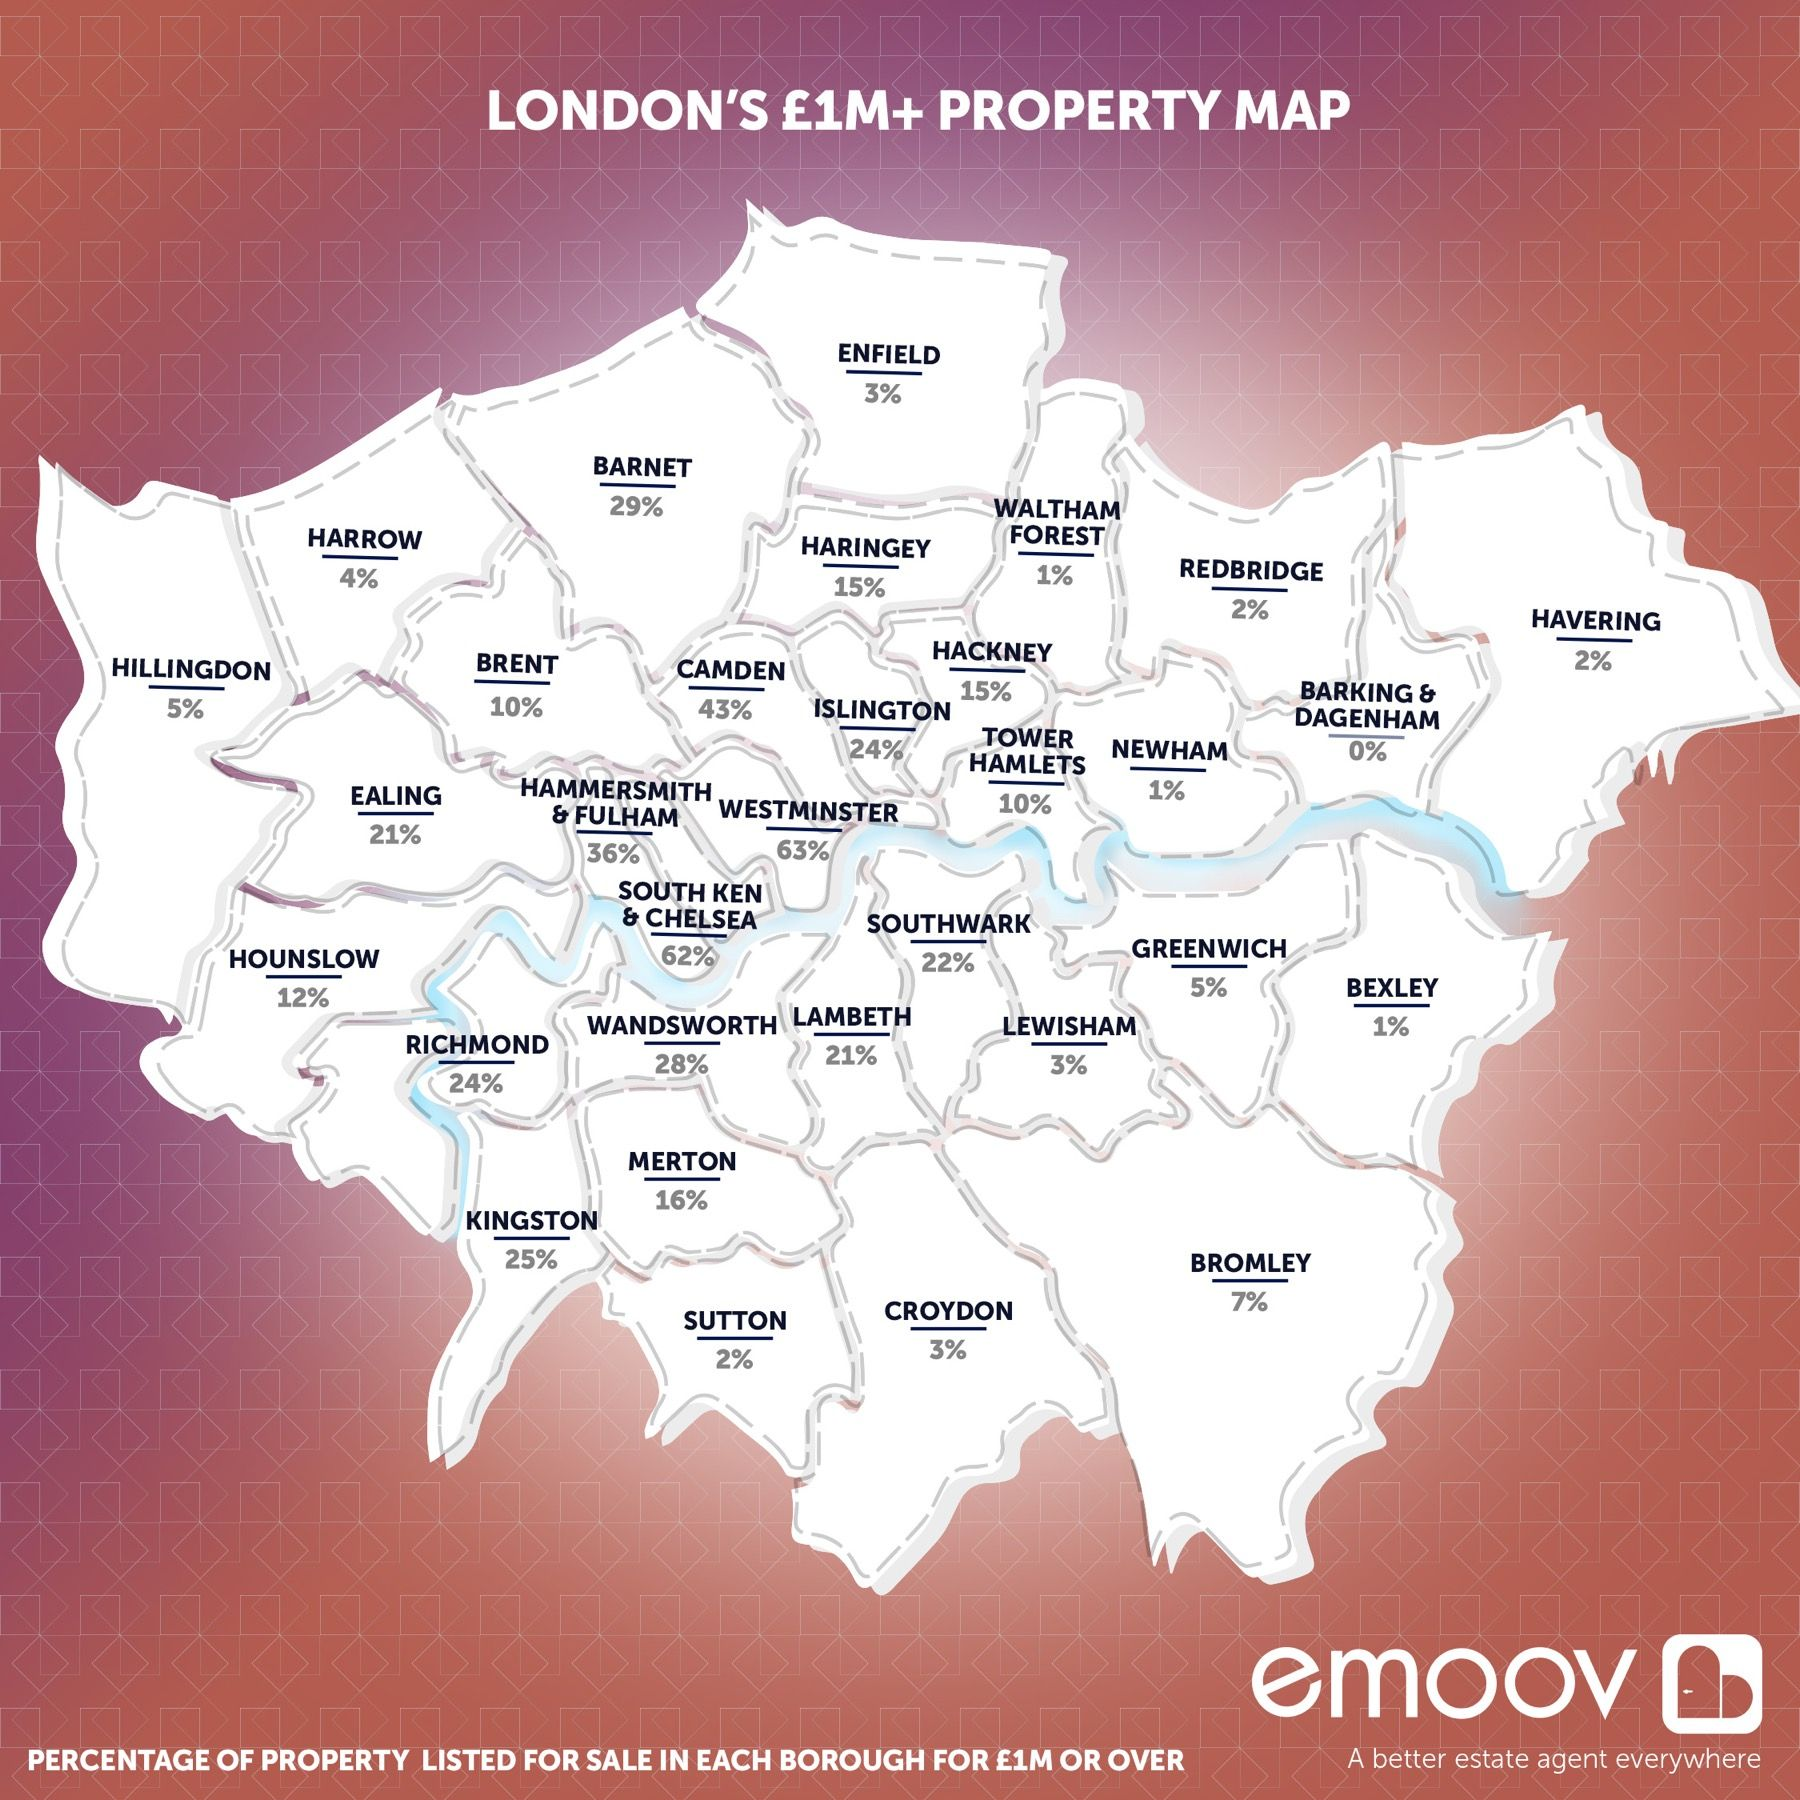 One in Five London Properties Costs £1m or More